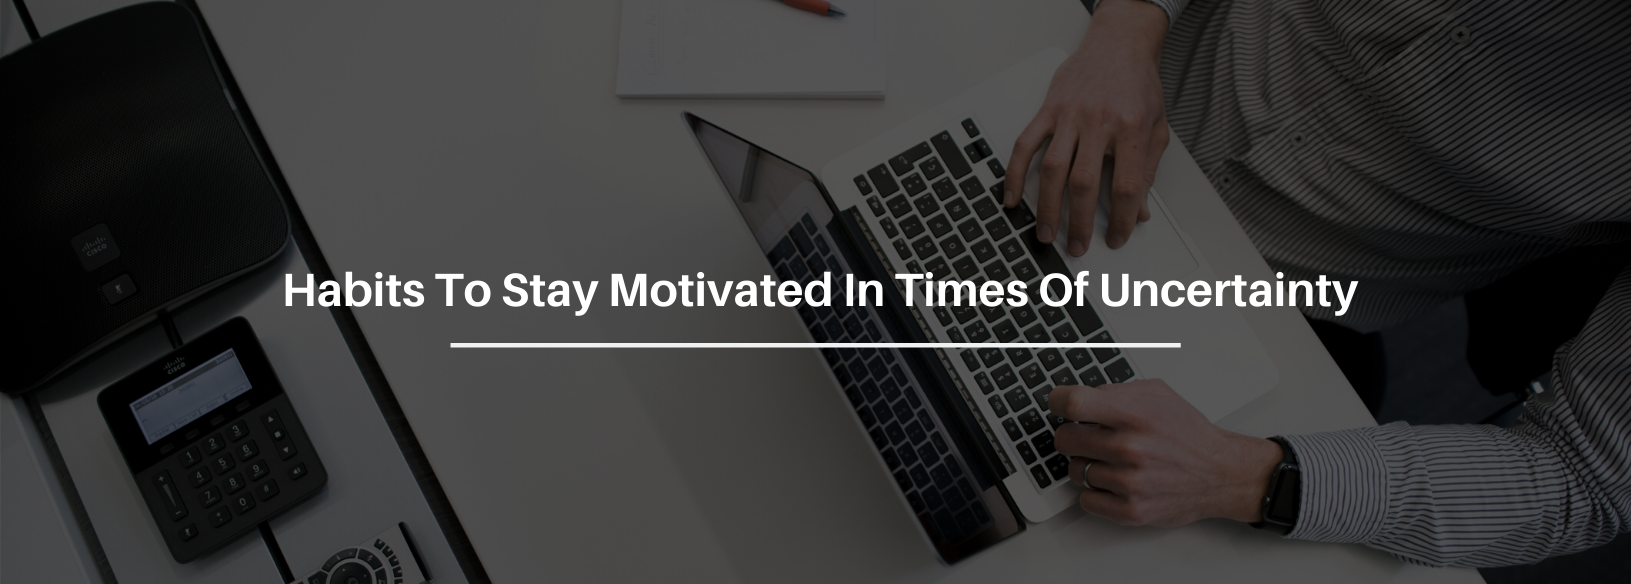 5 Simple Habits To Stay Motivated In Your Business In Times Of Uncertainty